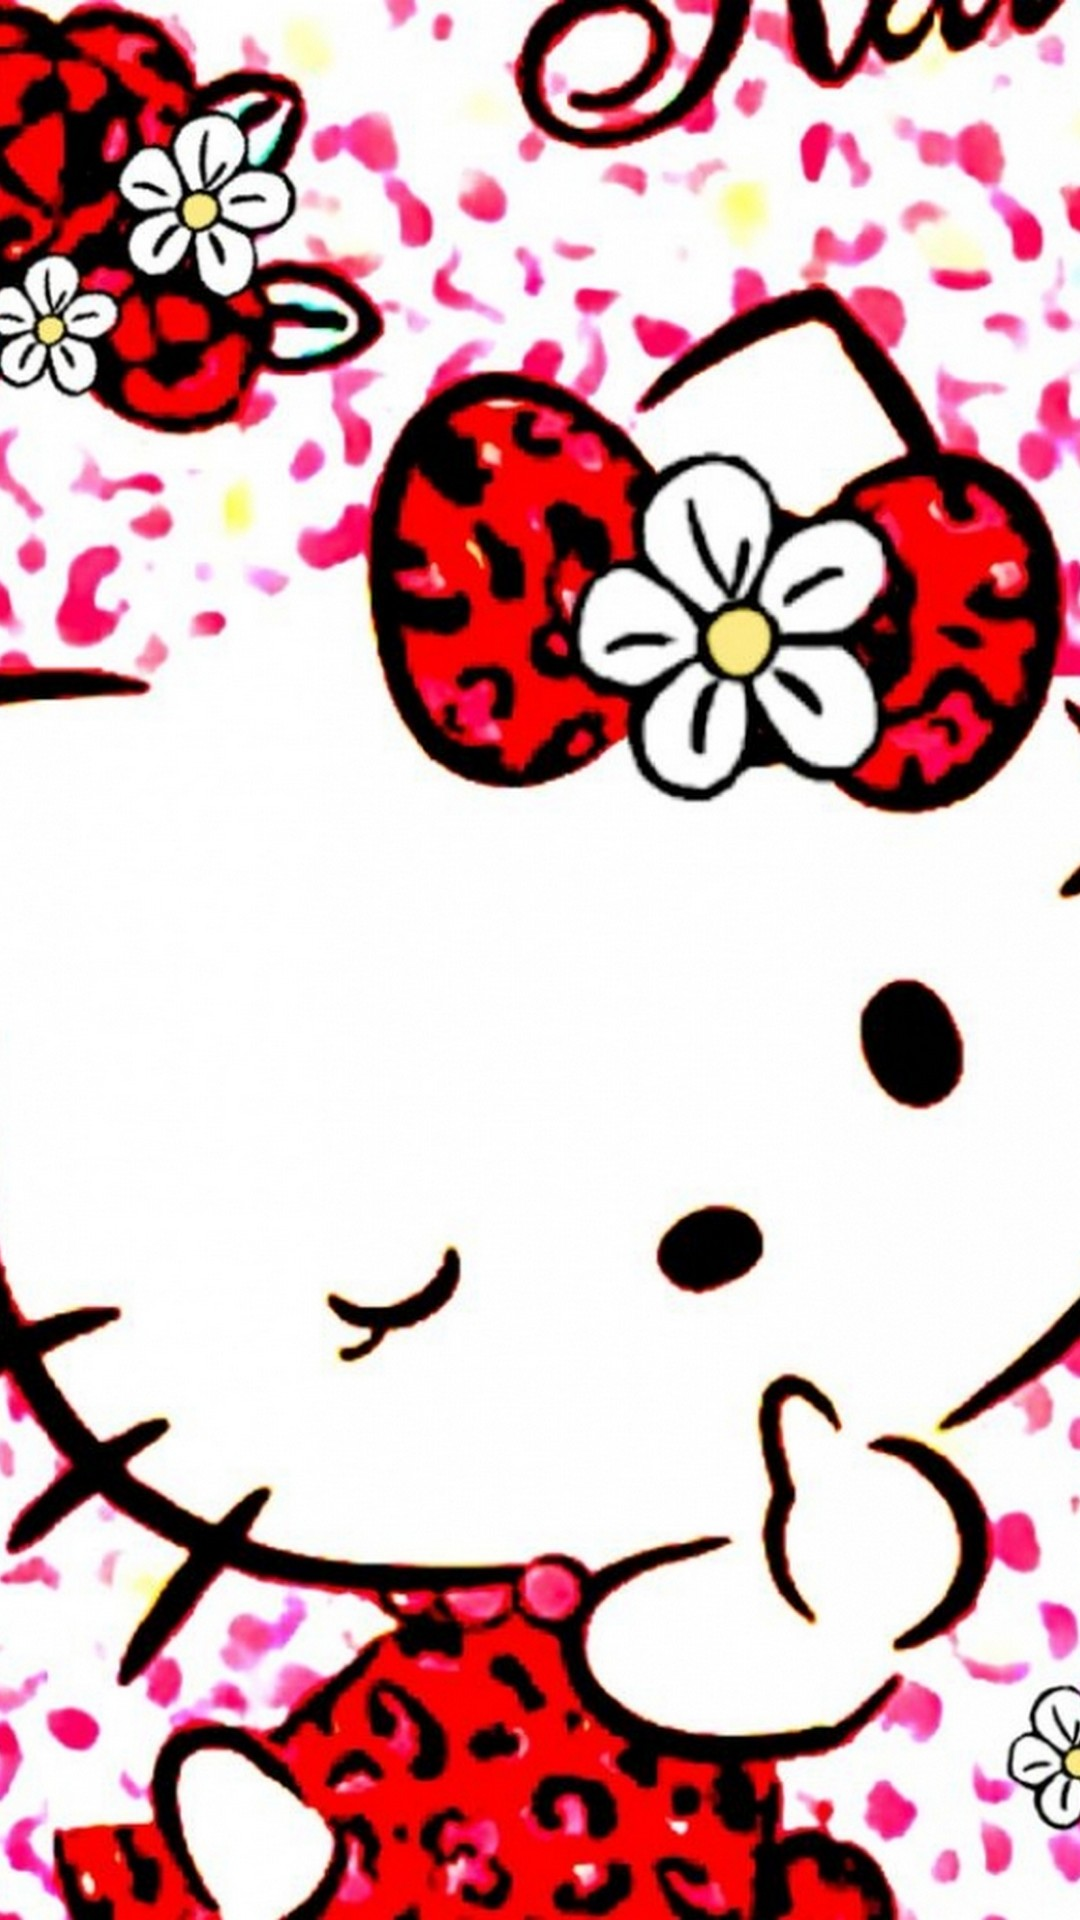 Wallpaper Hello Kitty Posted By Zoey Mercado